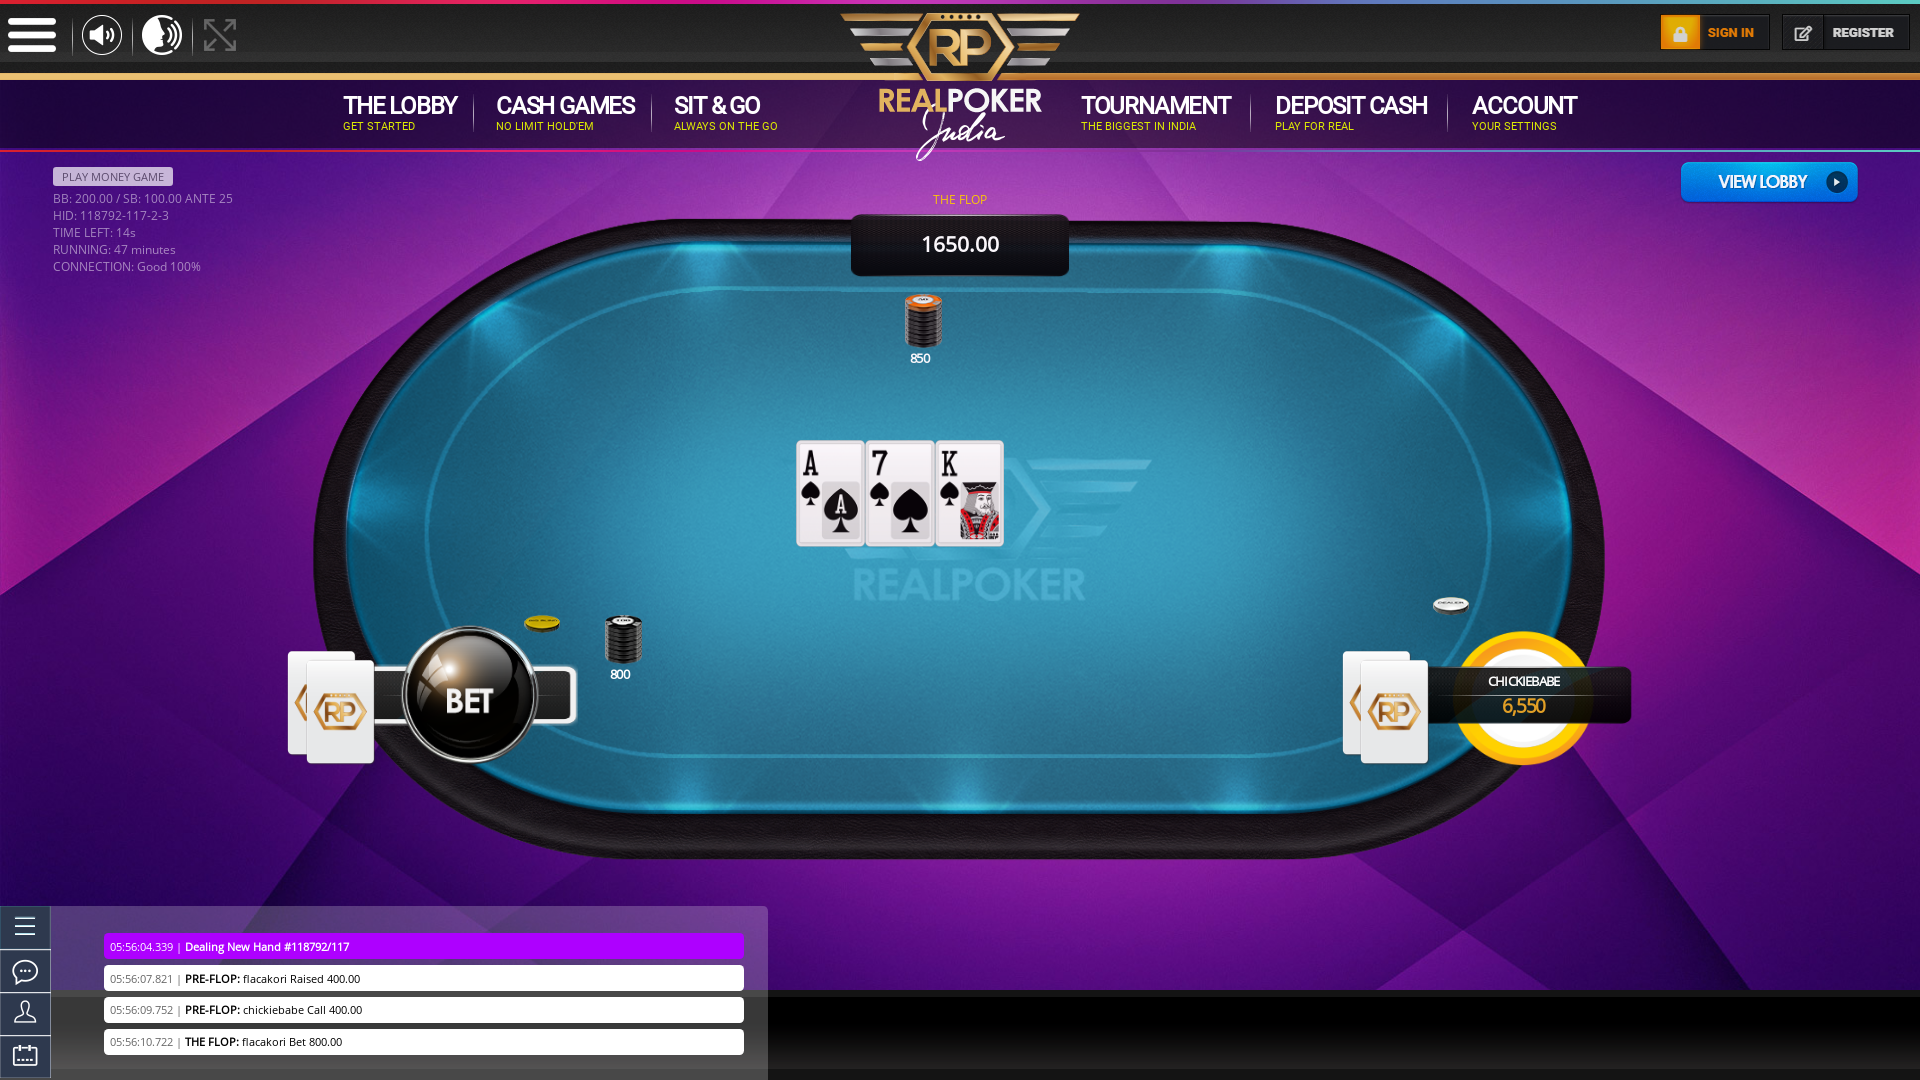 Real Indian poker on a 10 player table in the 47th minute of the game